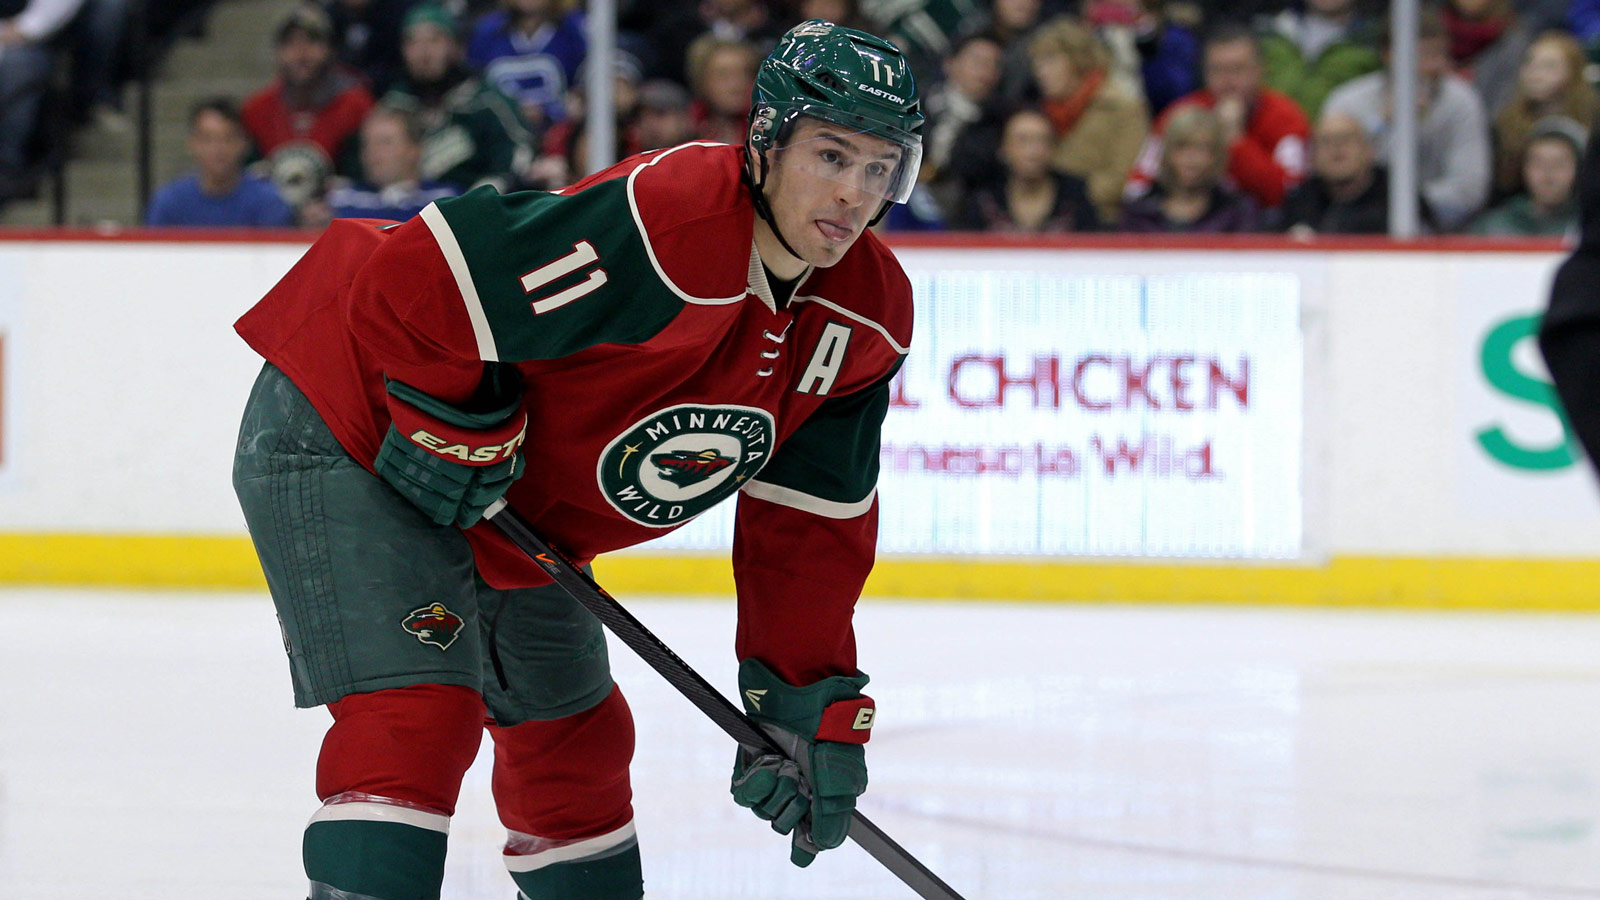 Wild's Parise, Twins' Mauer take the ice with pediatric cancer patients